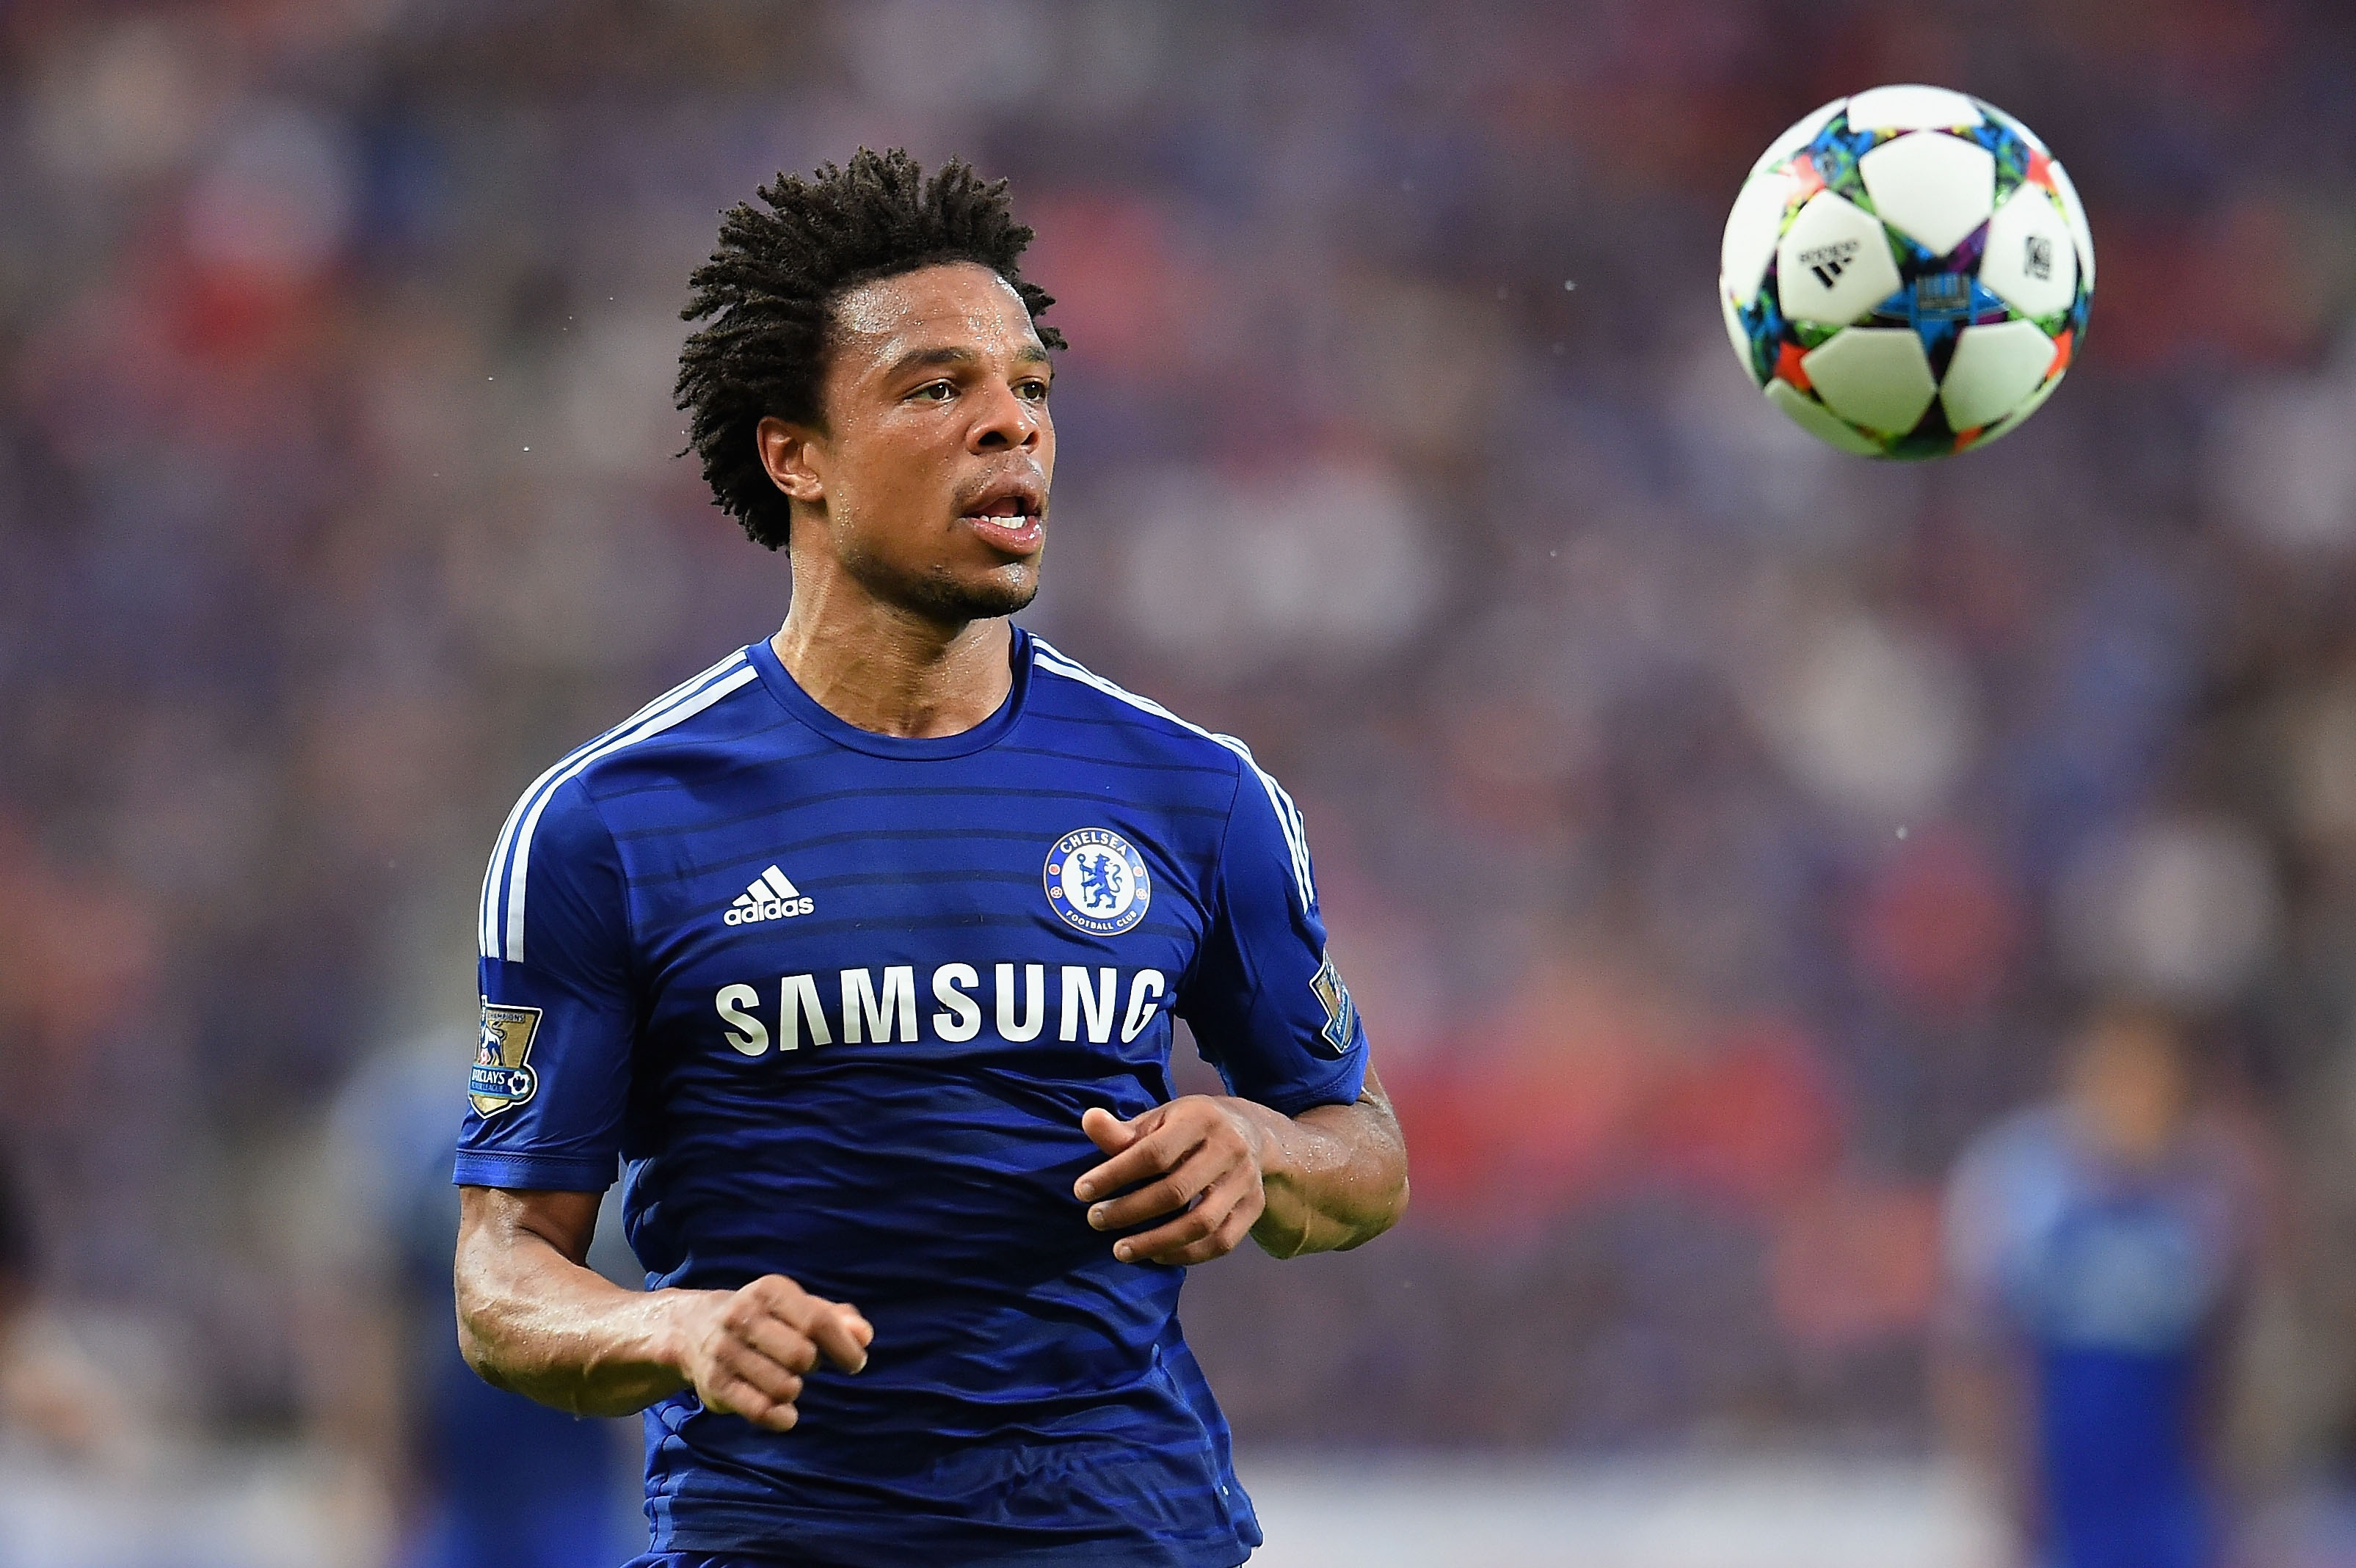 Loic Remy is wasting his career at Chelsea, says Harry Redknapp